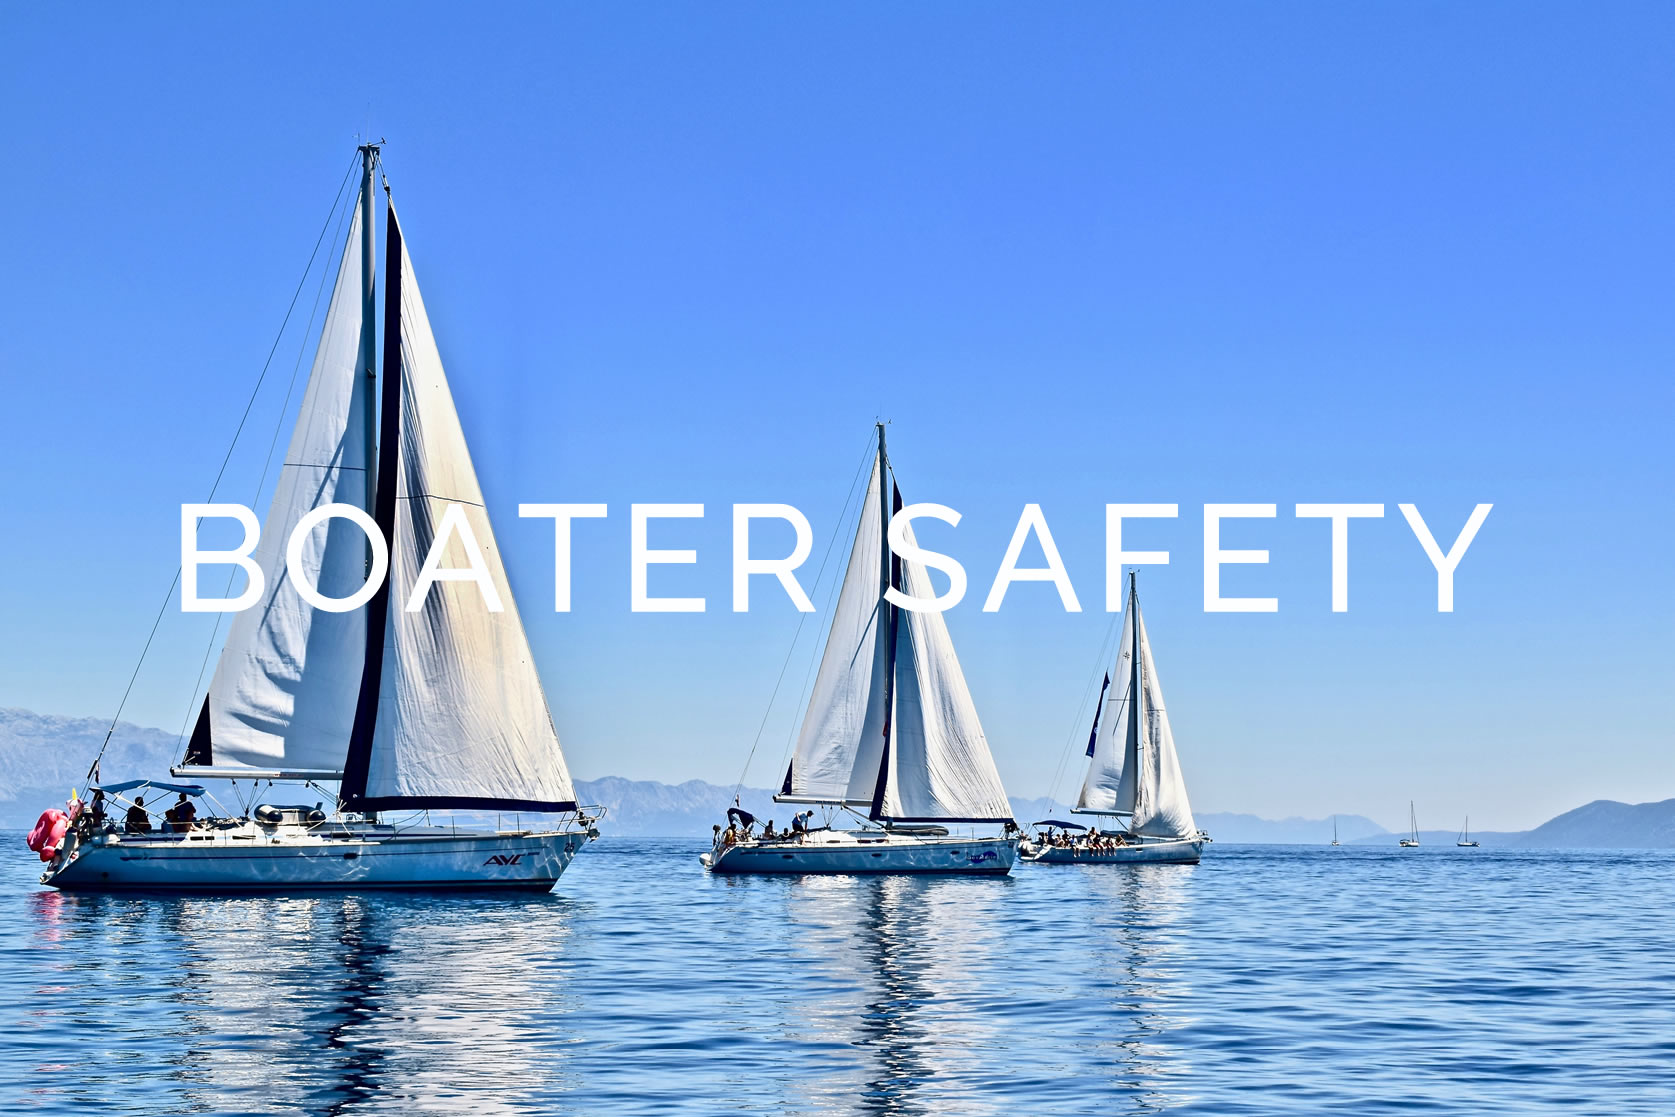 An Essential Tool for Boater Safety WoodsCan Hornet Rechargeable Electric Air Horn - the world's most advanced signaling device for industrial and recreational safety.